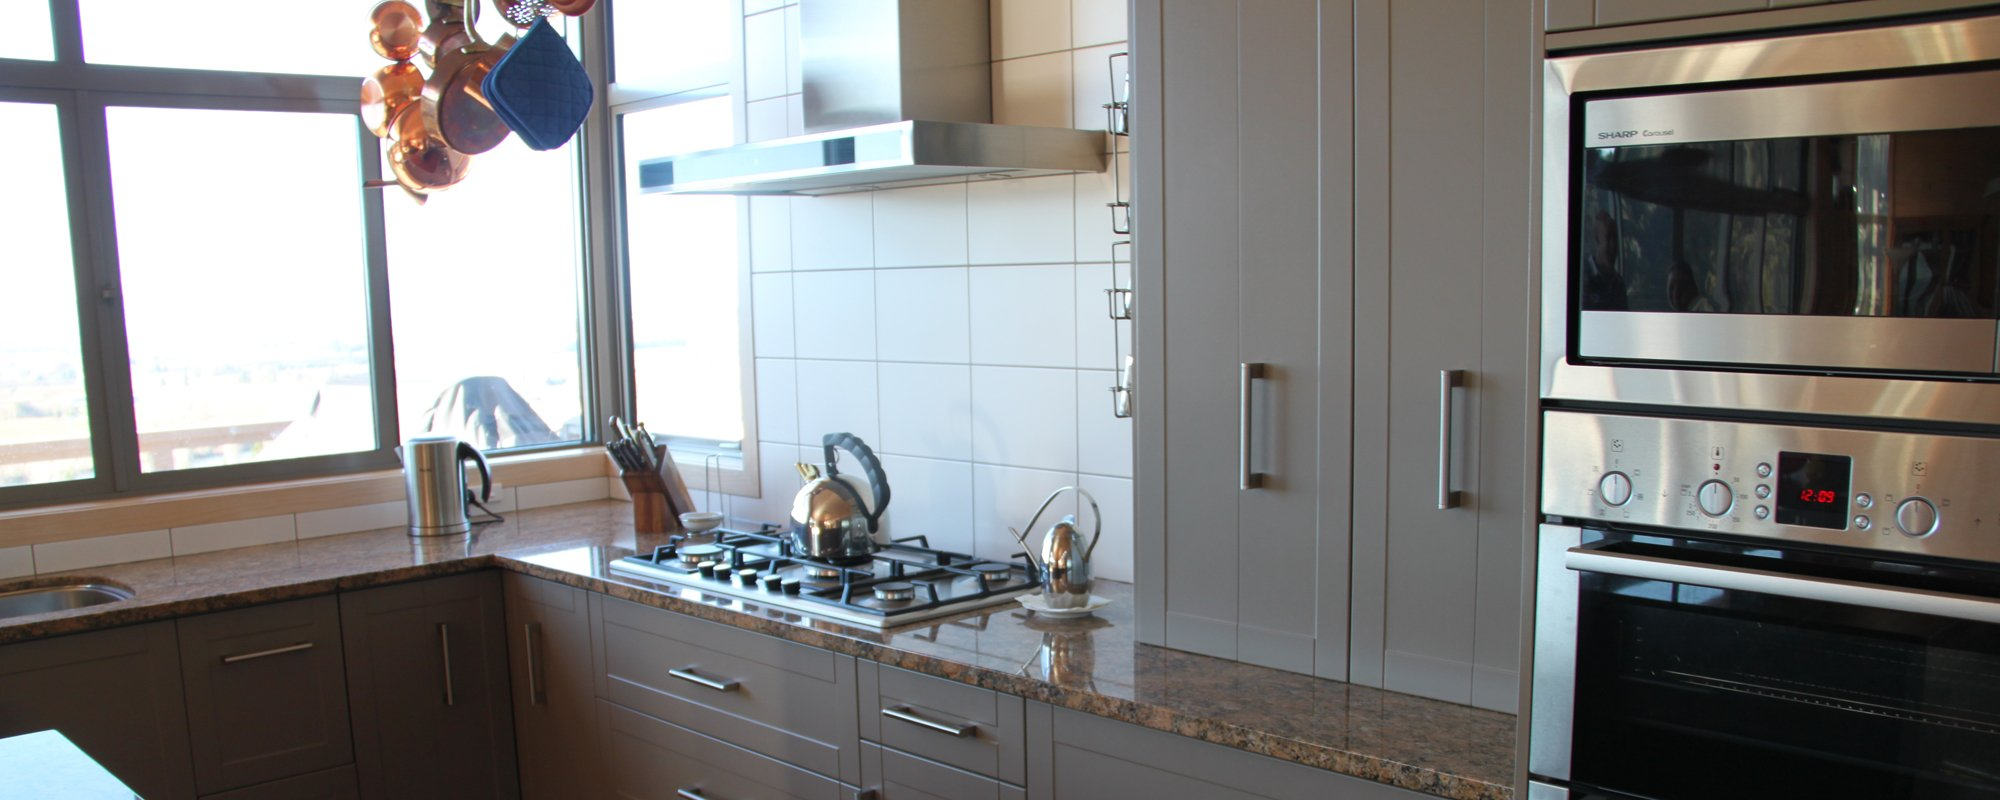 View of a renovated kitchen in Motueka